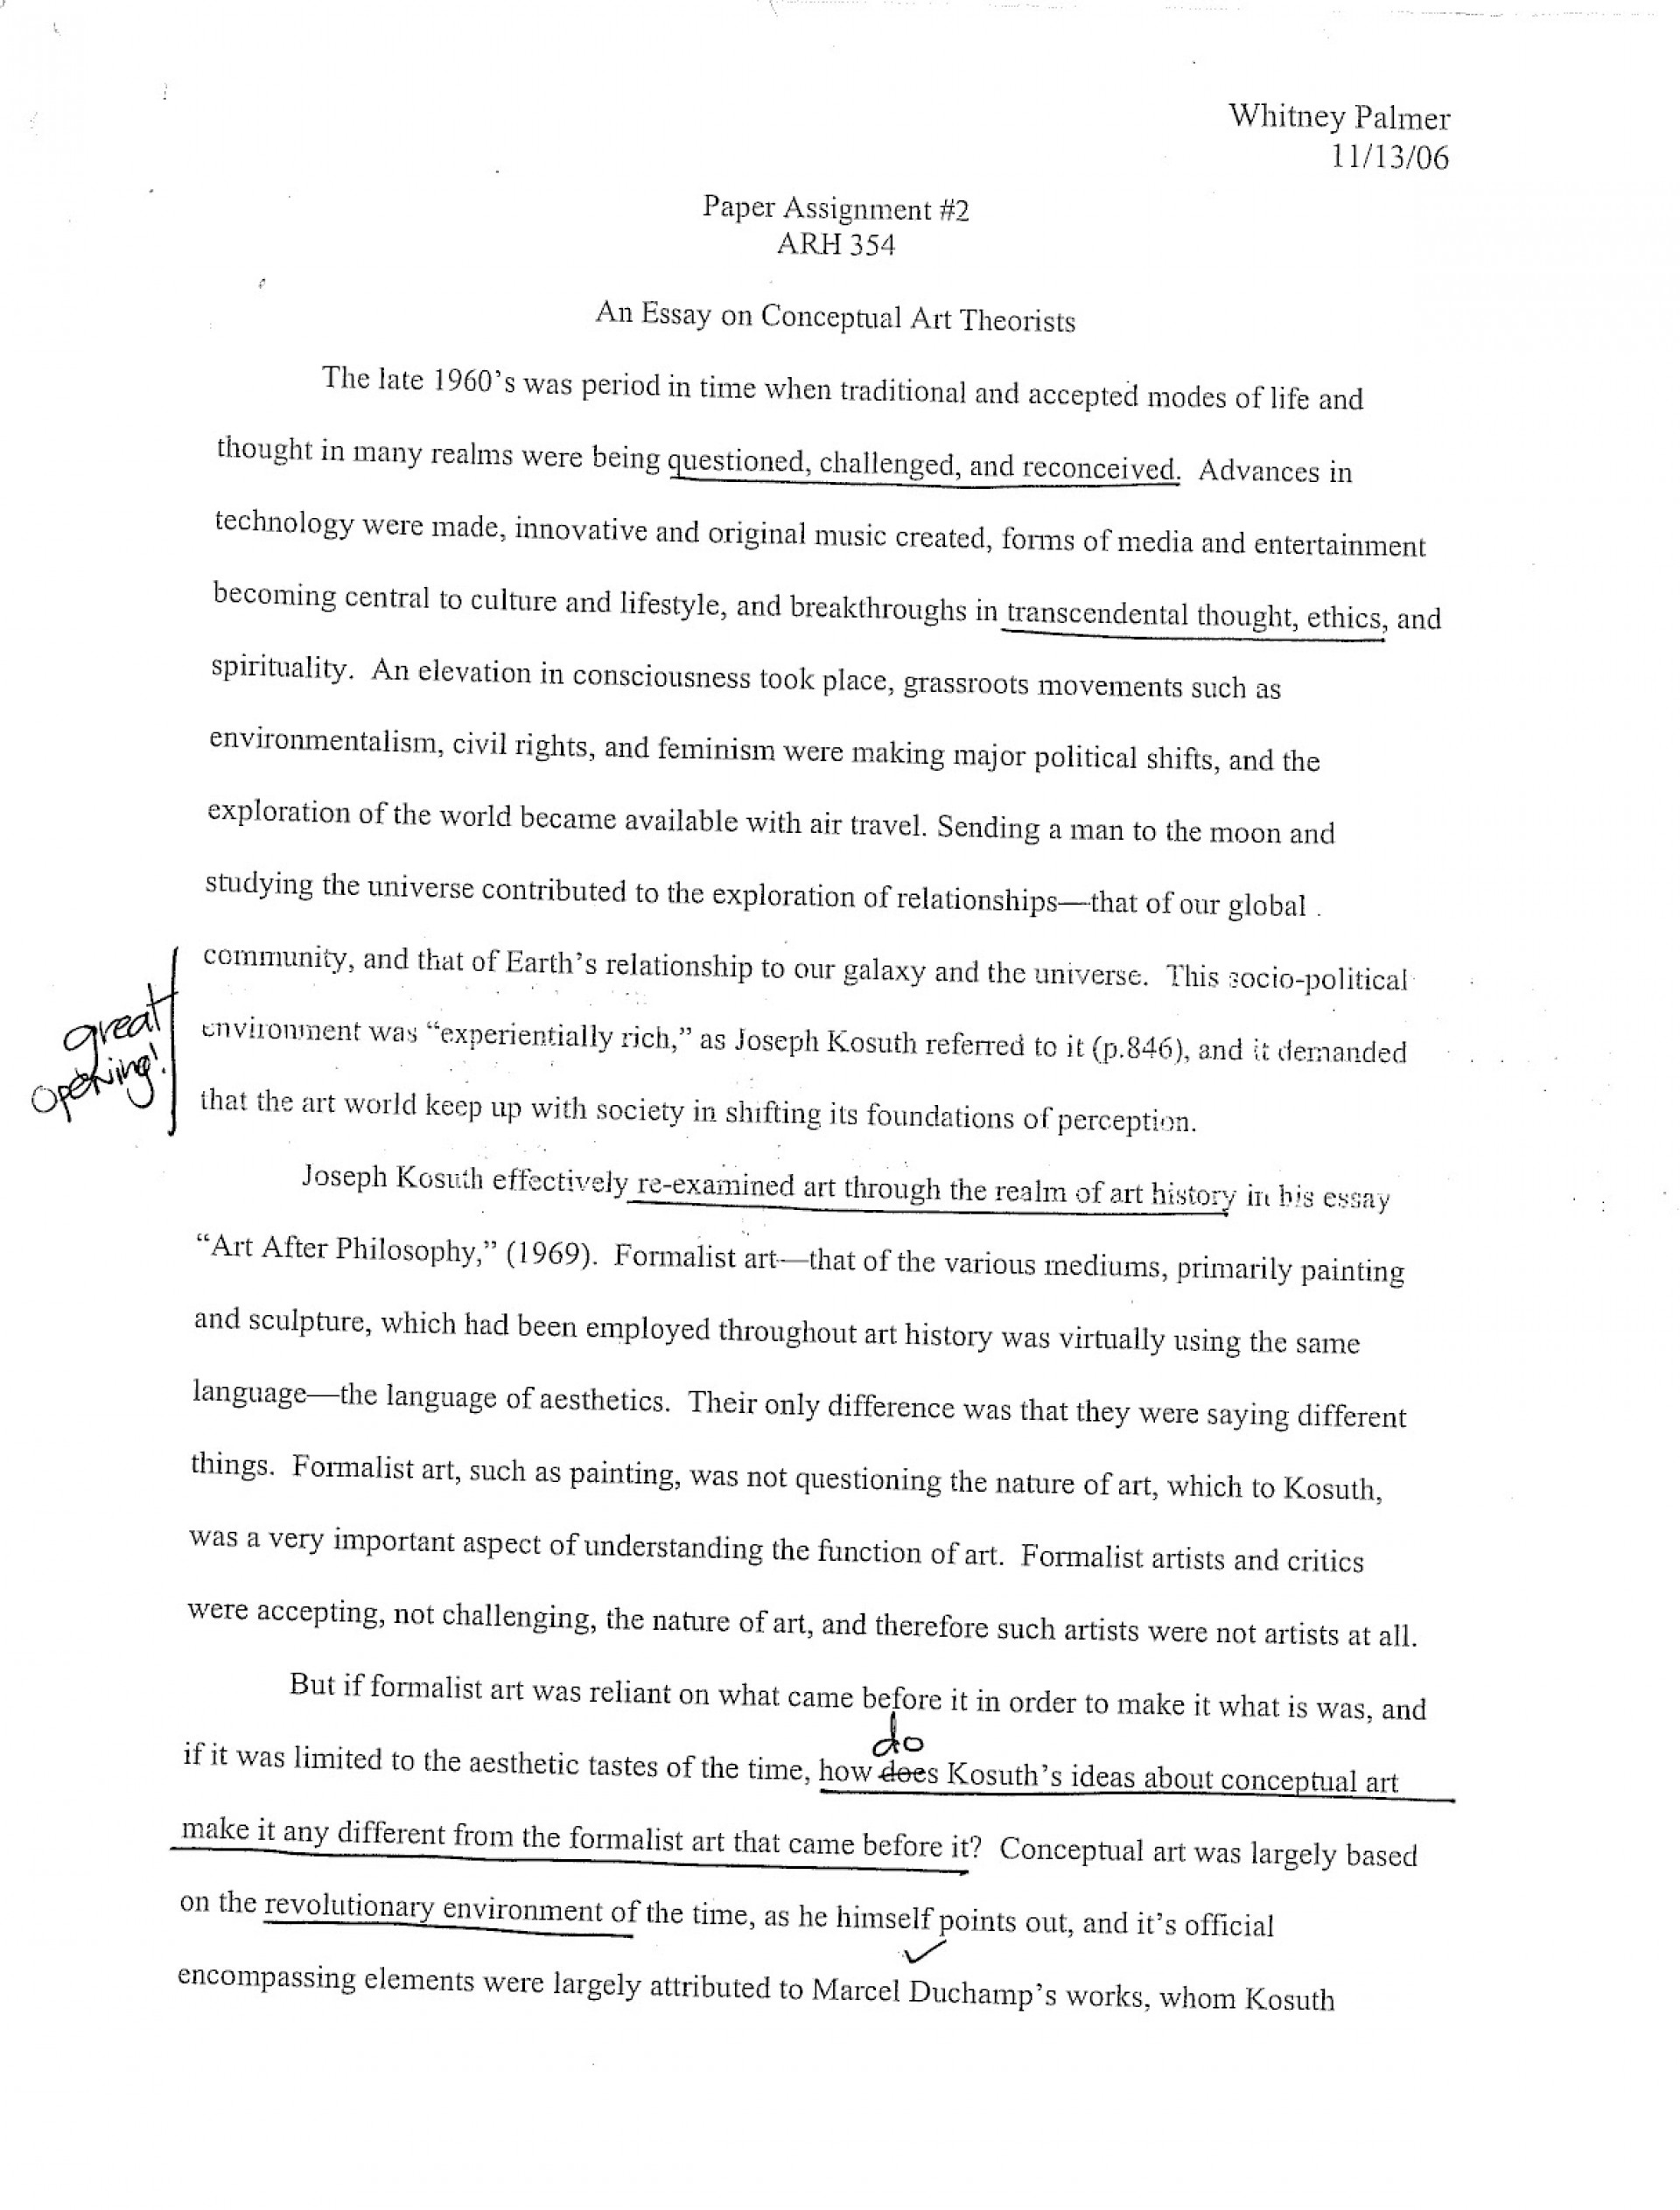 007 Art Essay Page Phenomenal History Introduction Pop Conclusion Outline 1920